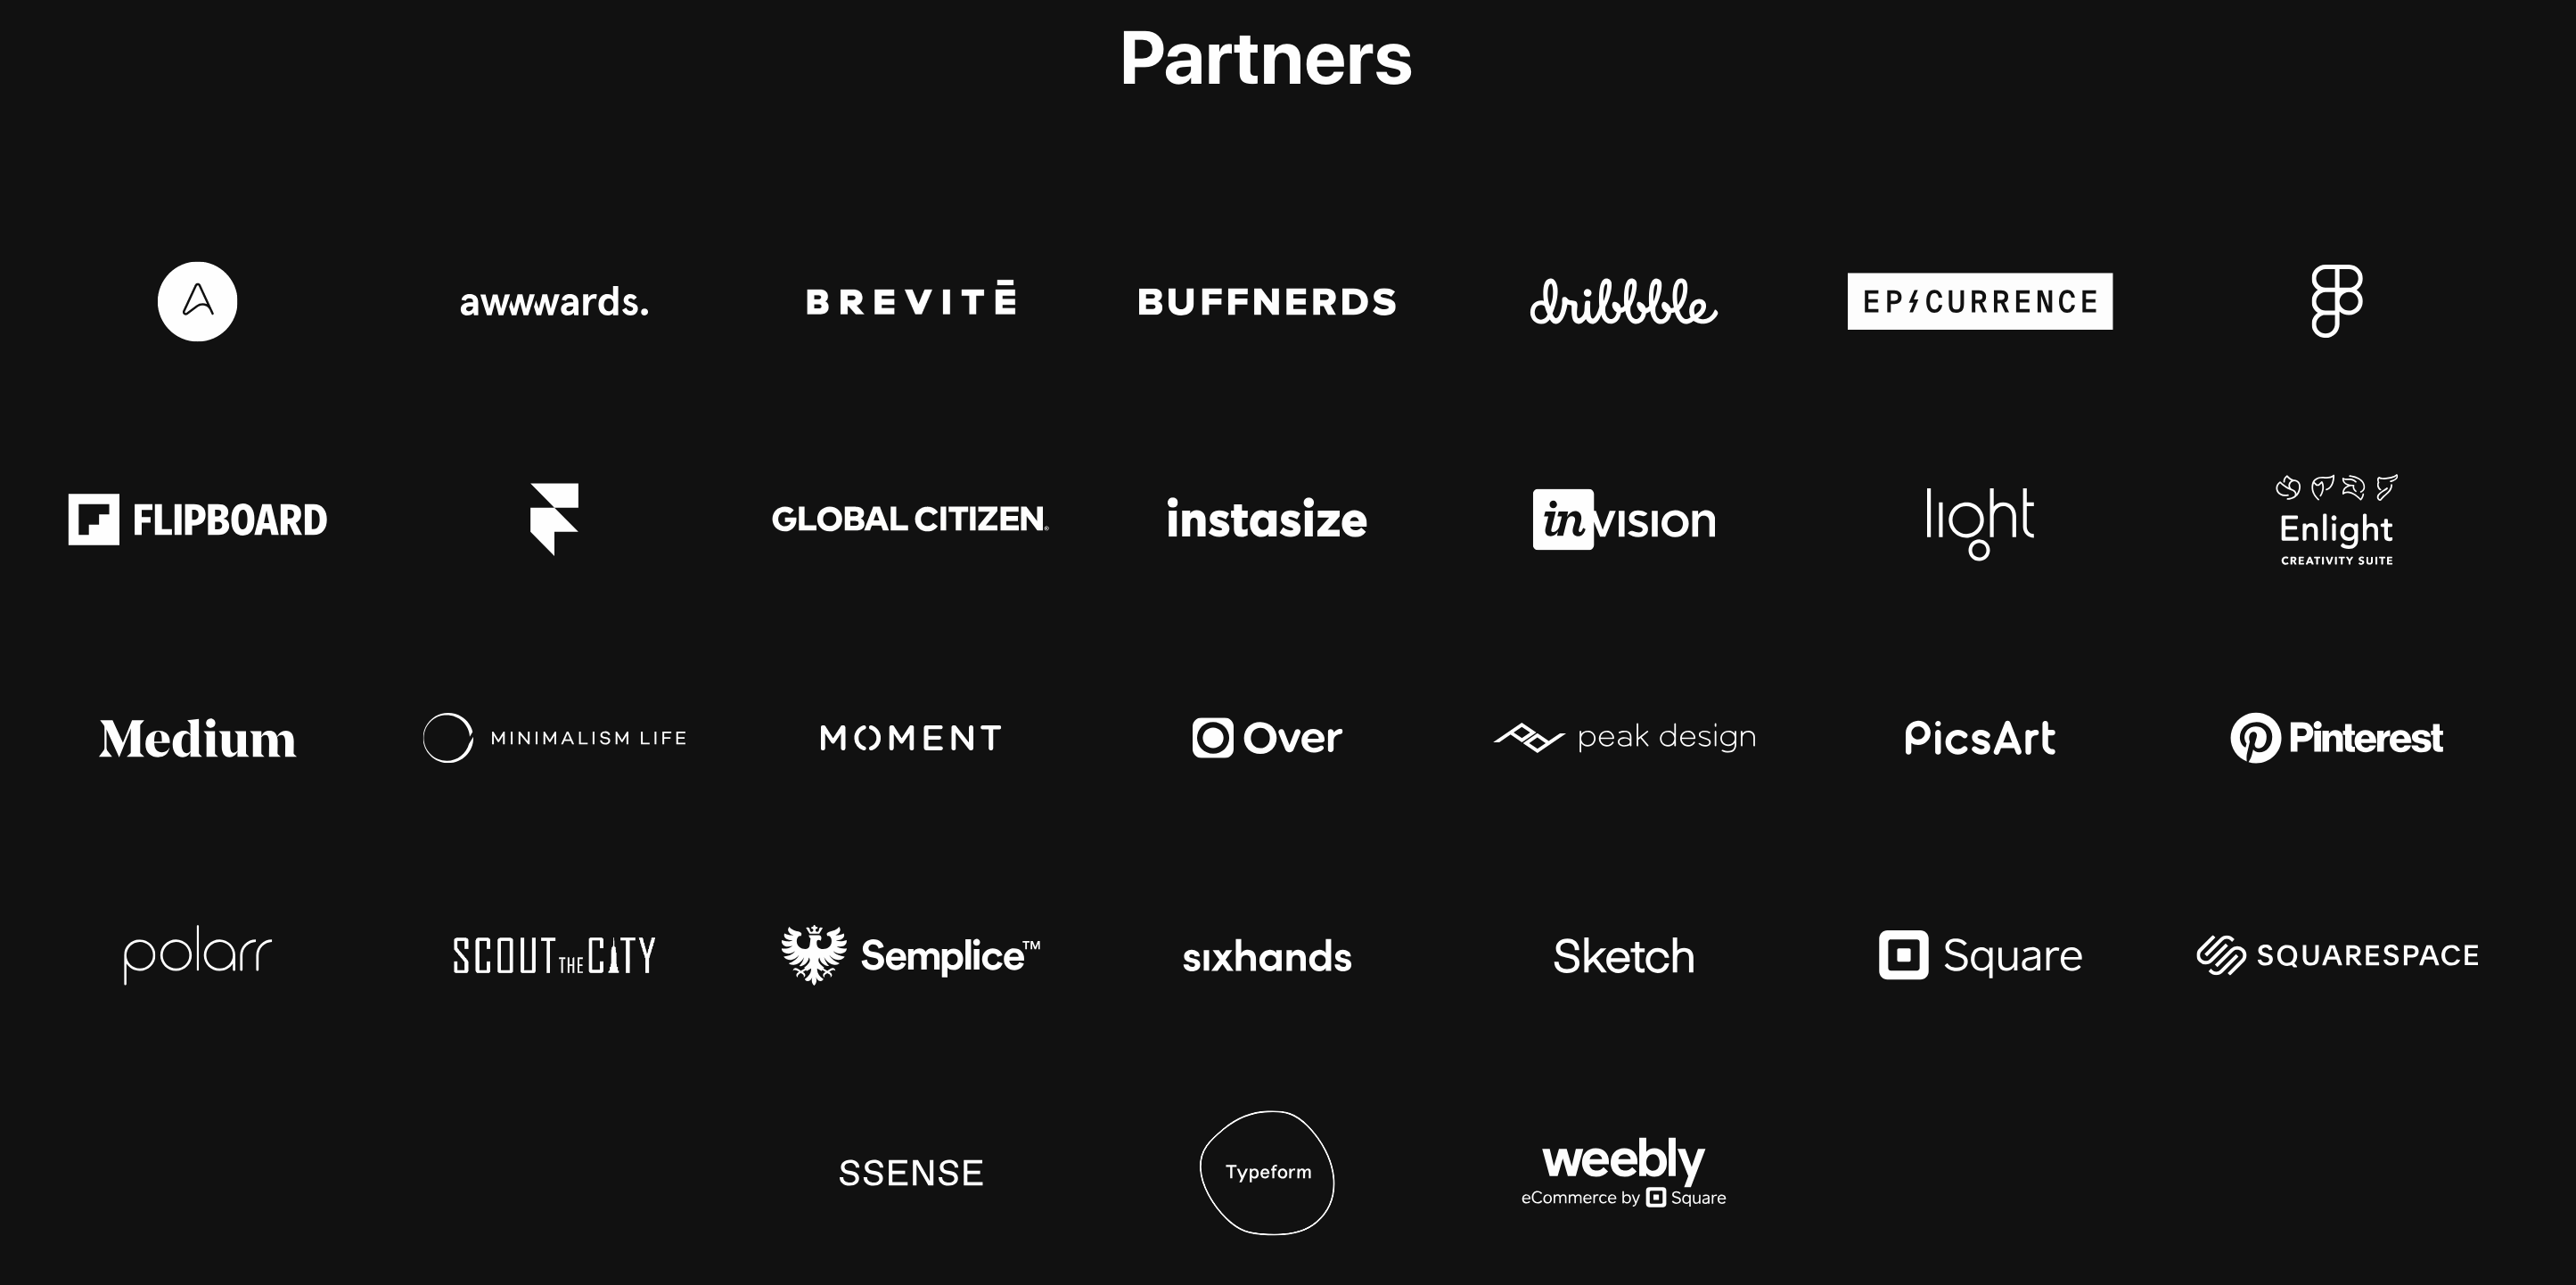 These Companies Are Supporting the Biggest Photography Rights Grab We've Seen in a While